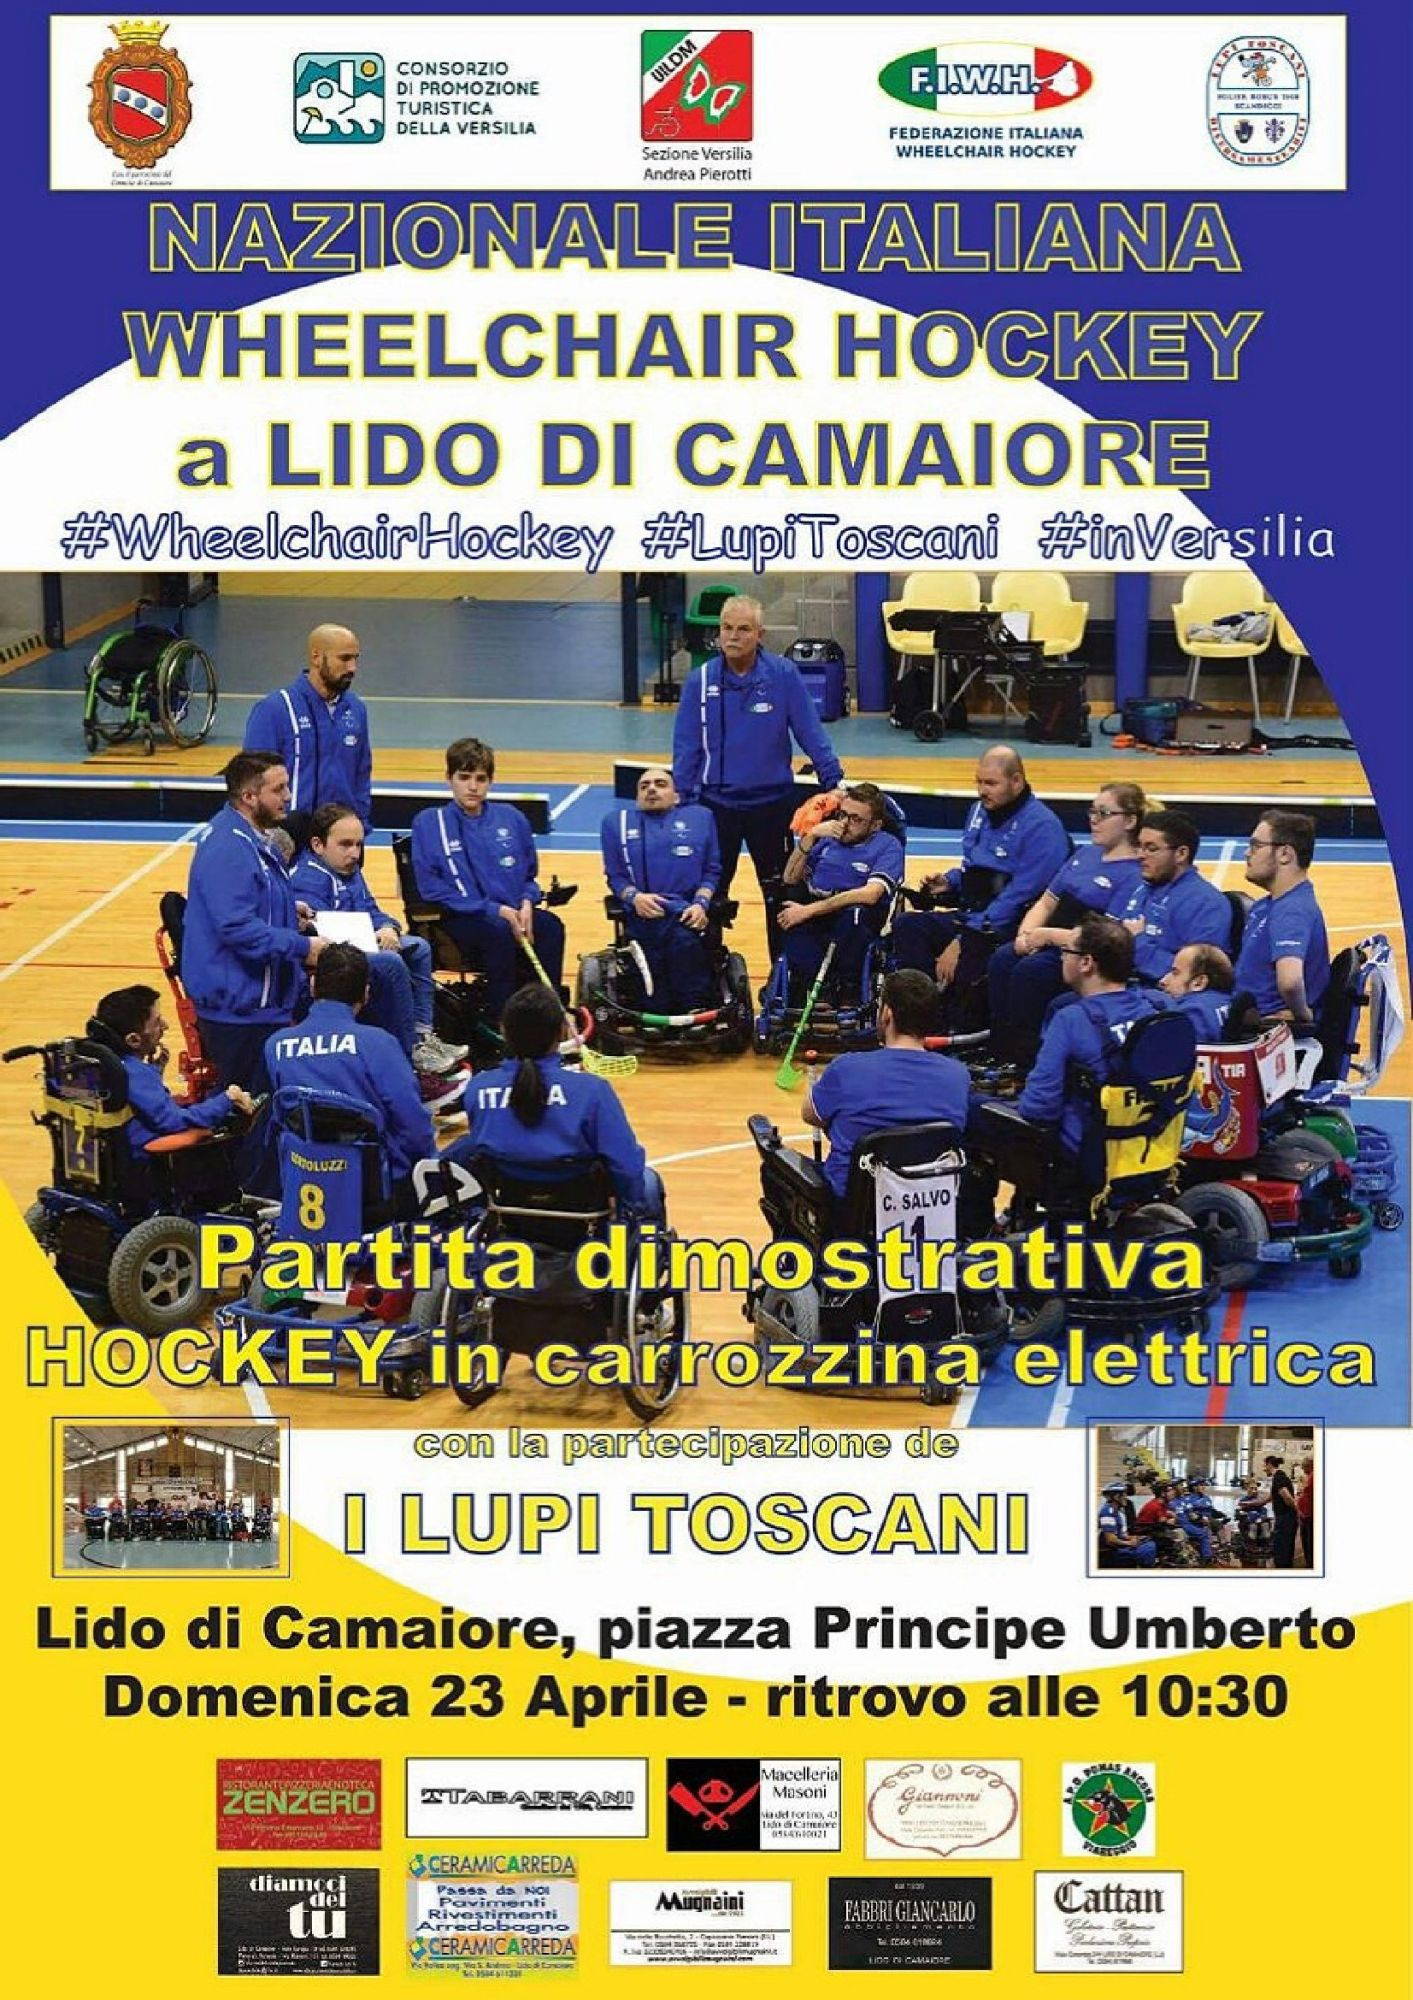 La nazionale italiana di wheelchair hockey in Versilia